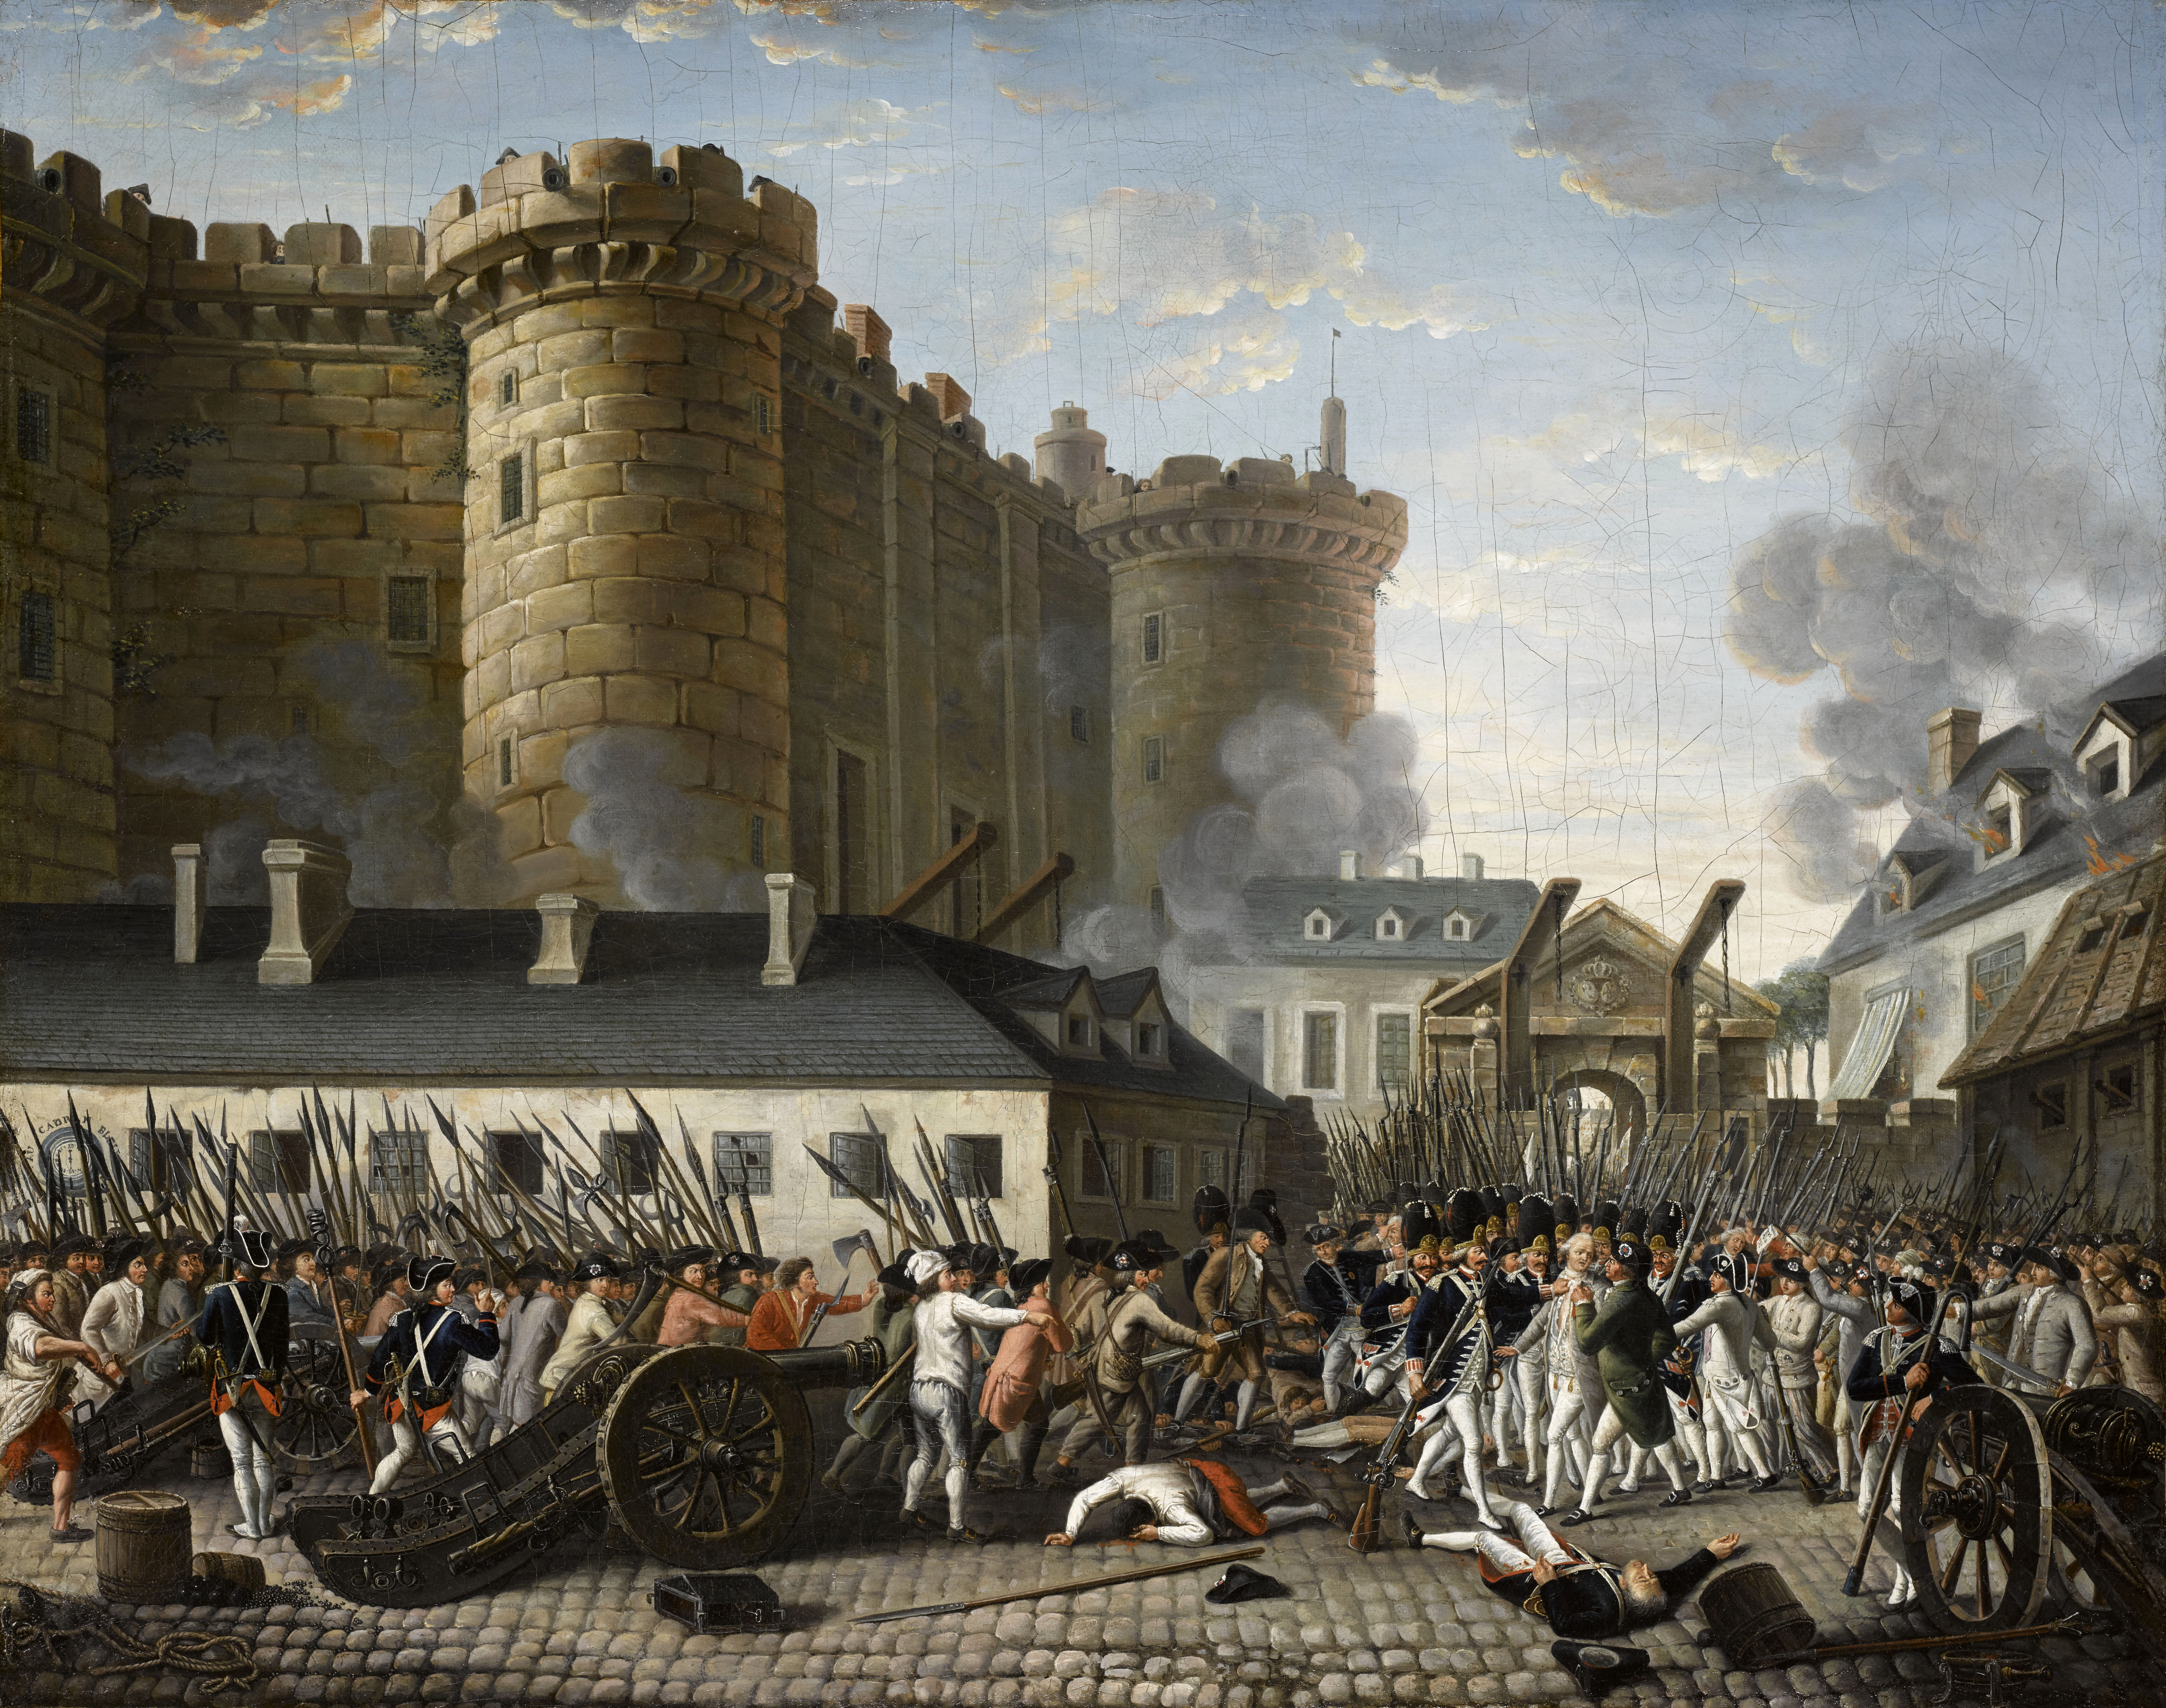 http://upload.wikimedia.org/wikipedia/commons/5/57/Anonymous_-_Prise_de_la_Bastille.jpg